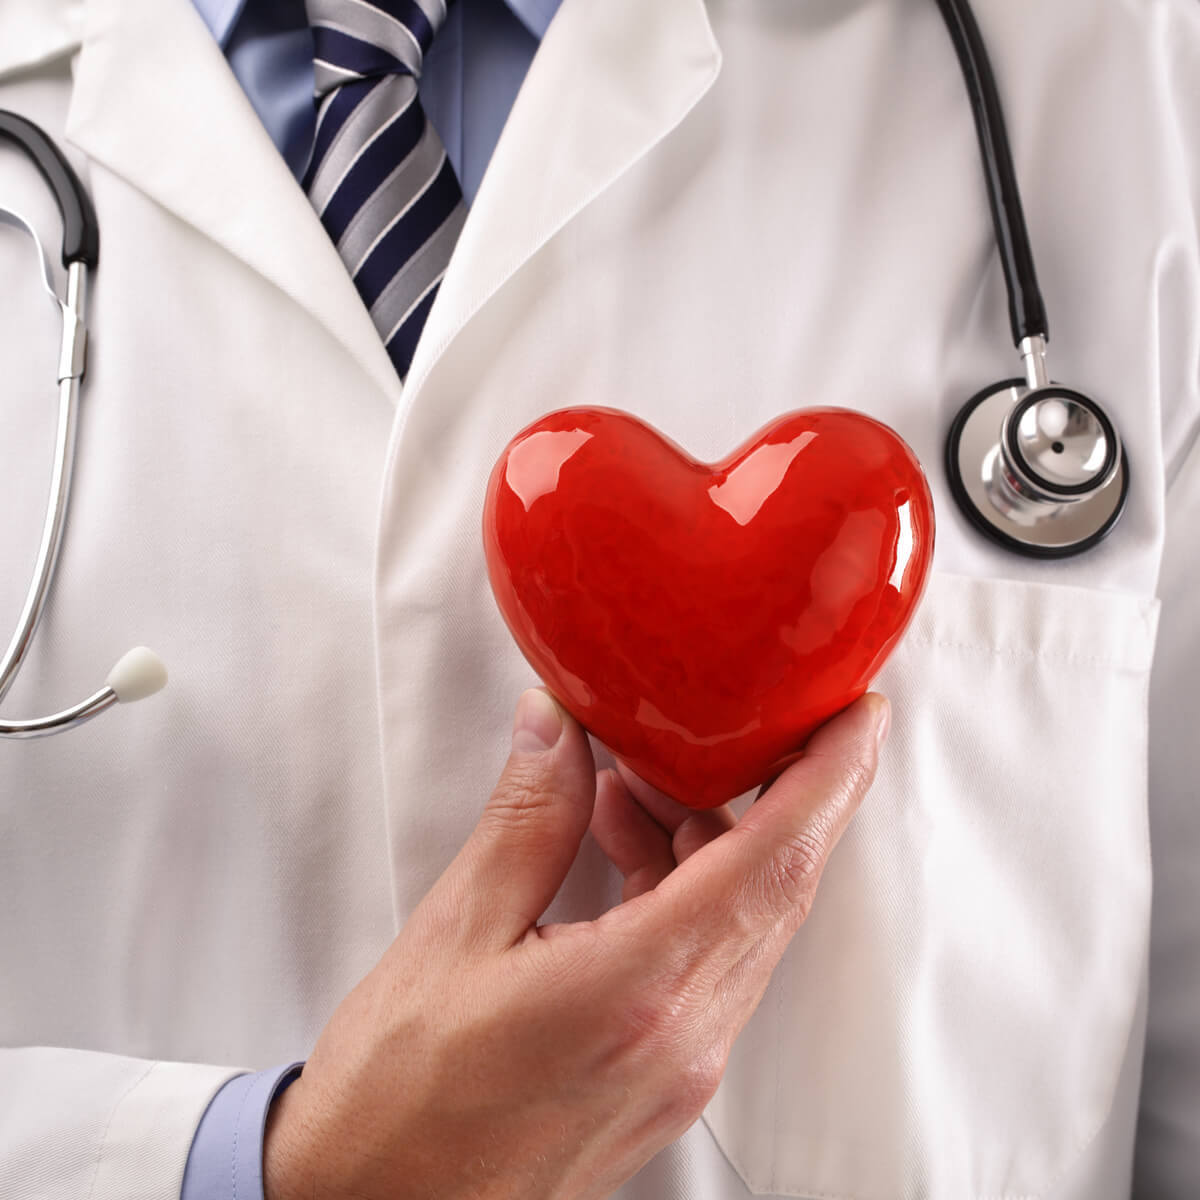 Search for cardiologist jobs worldwide